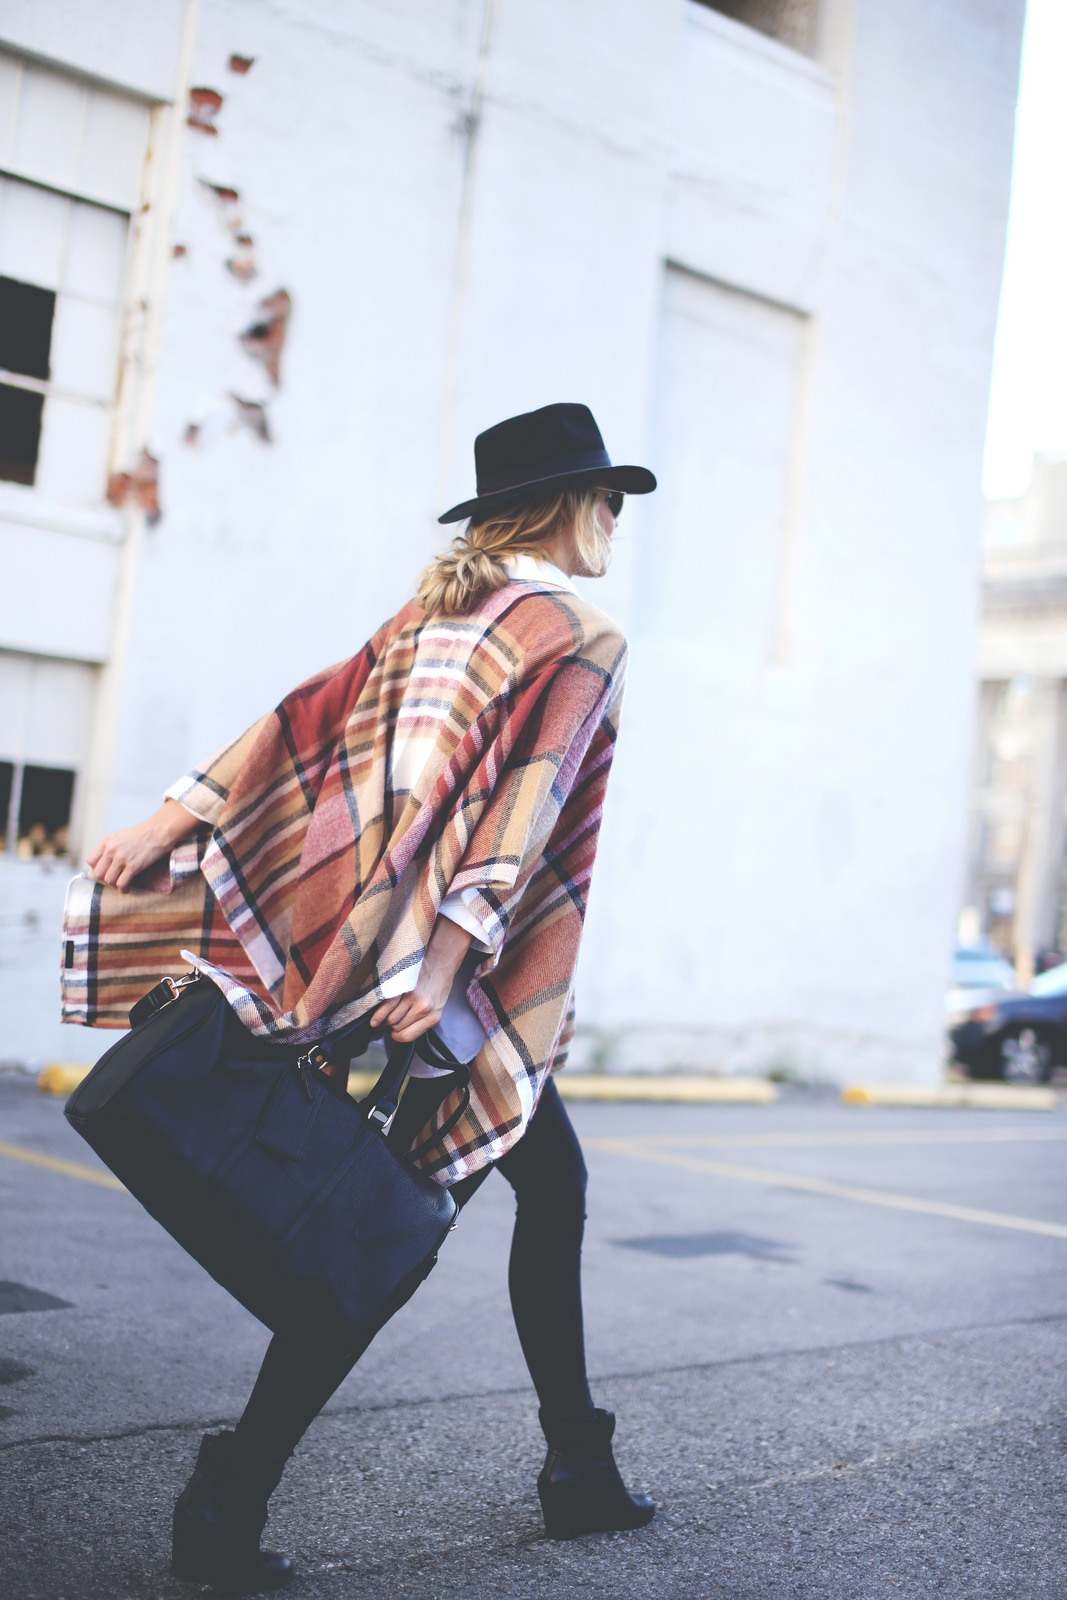 Mary Seng is wearing a plaid cape from TopShop, jeans from J Brand, bag and boots from Sole Society and the hat is from Madewell